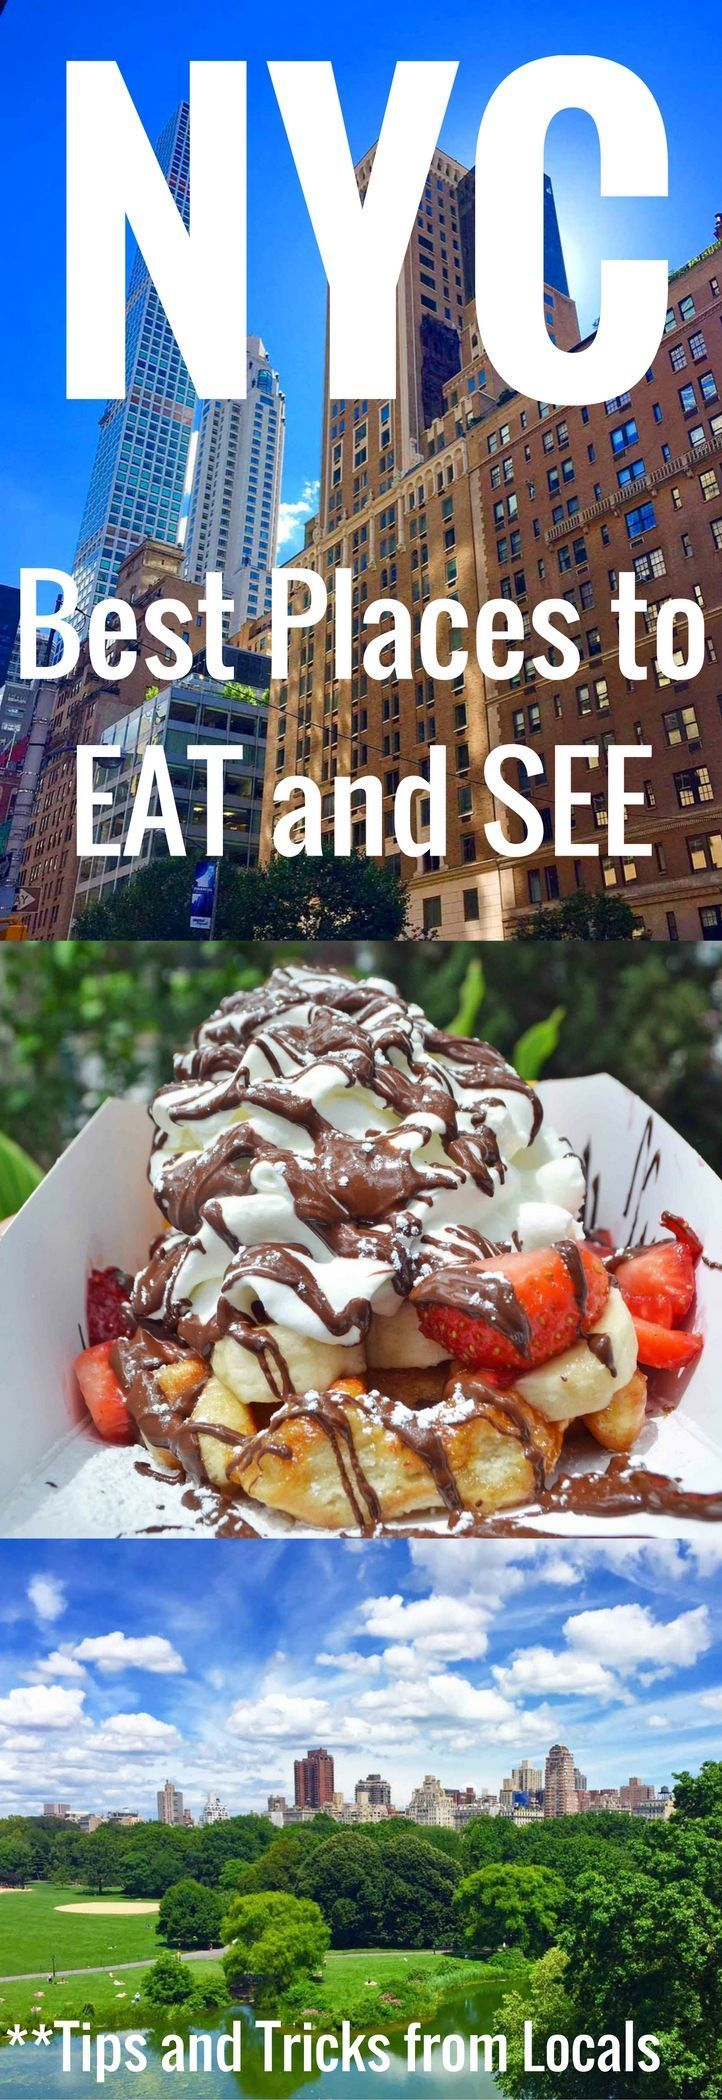 A comprehensive guide of the BEST places to EAT and SEE in New York City. Tips and tricks from the locals on how to navigate the city, the best places to see, and the highest rated places to eat. If you are planning a trip to New York City, you need this